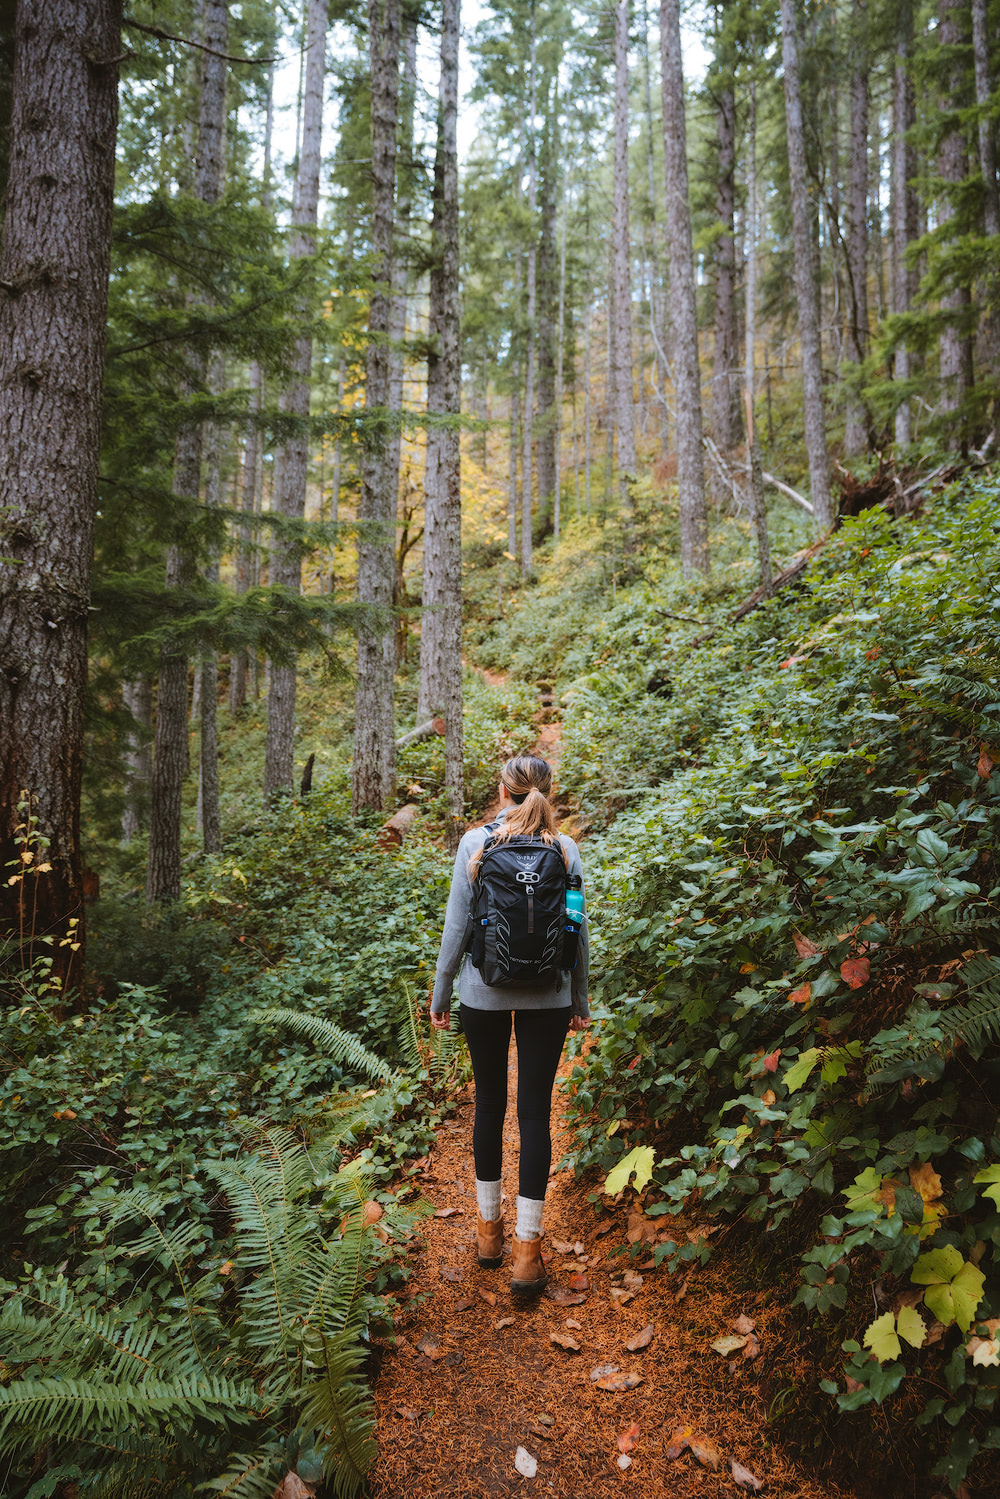 Olympic National Park Adventure Getaway 24 Hour Itinerary from Seattle Renee Roaming Mount Storm King Hike